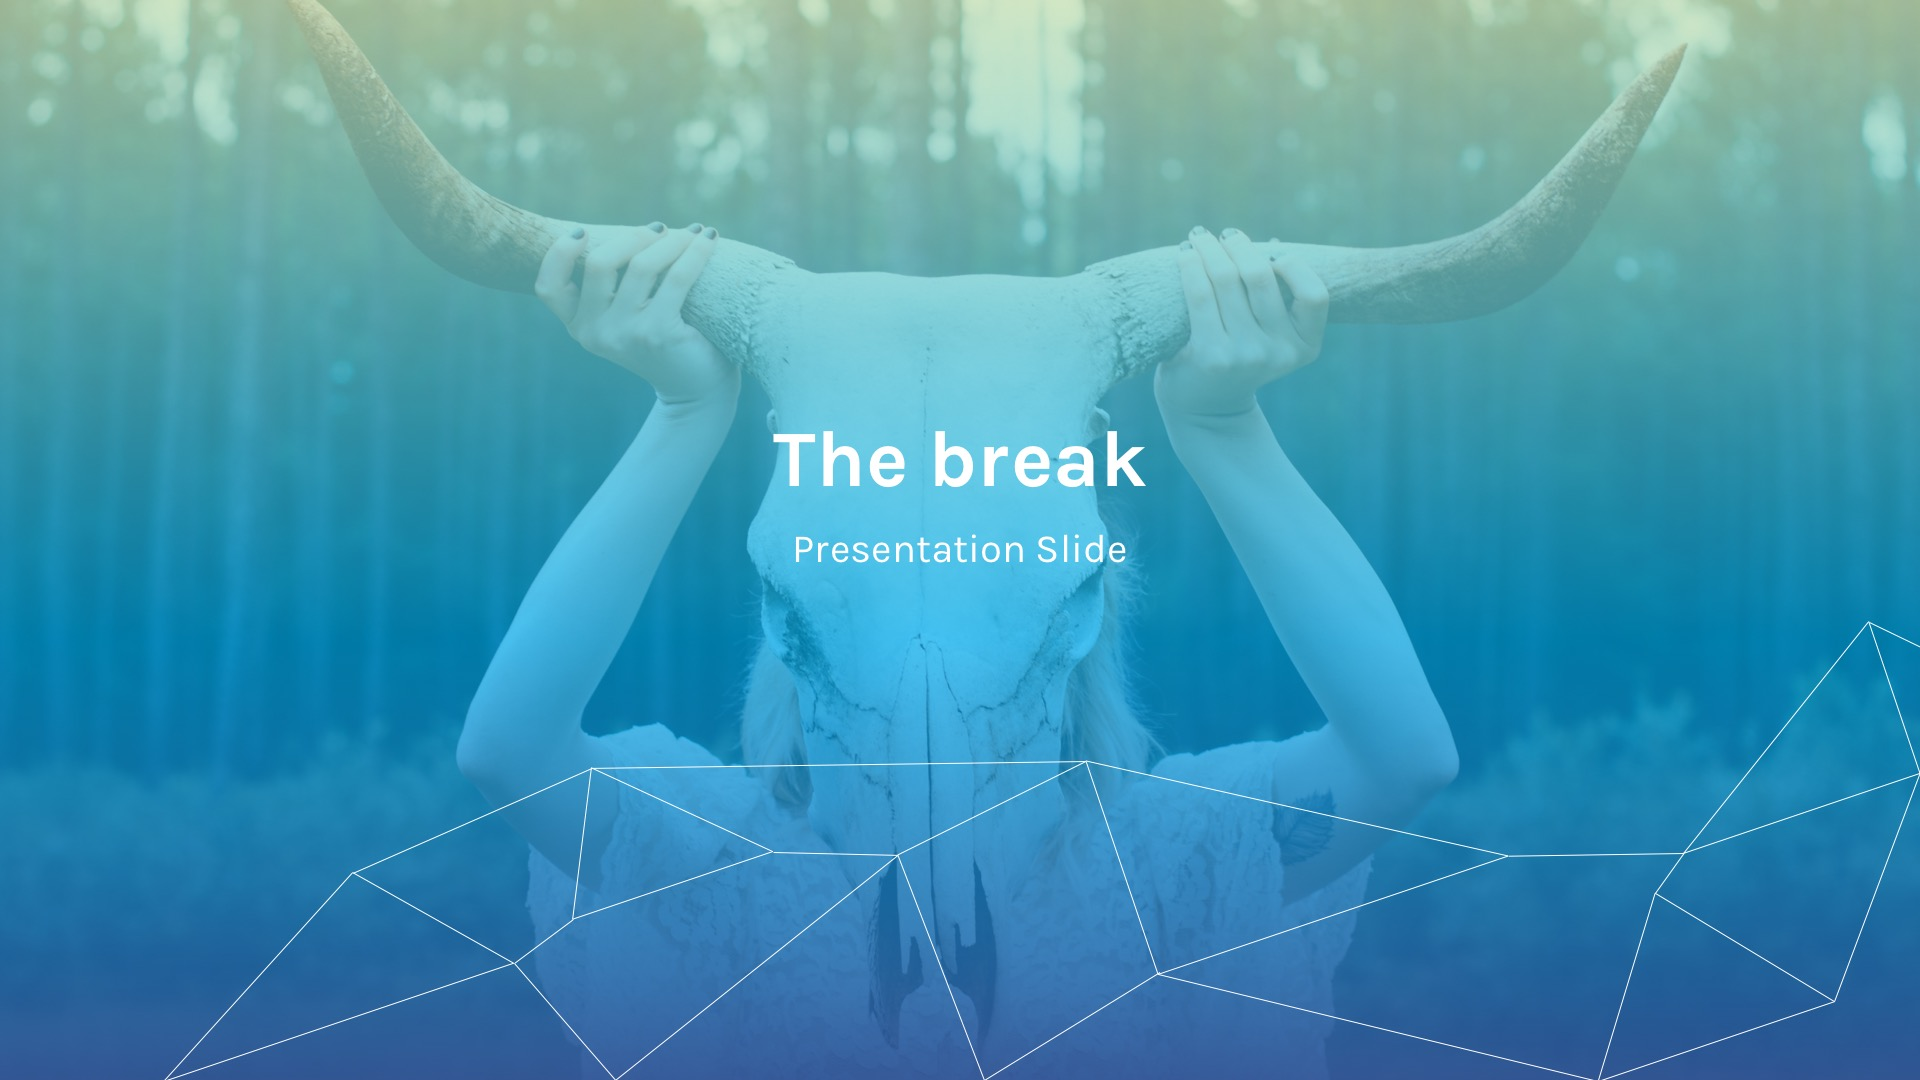 Paradox powerpoint template by grizzlydesign graphicriver paradox powerpoint template alramifo Choice Image